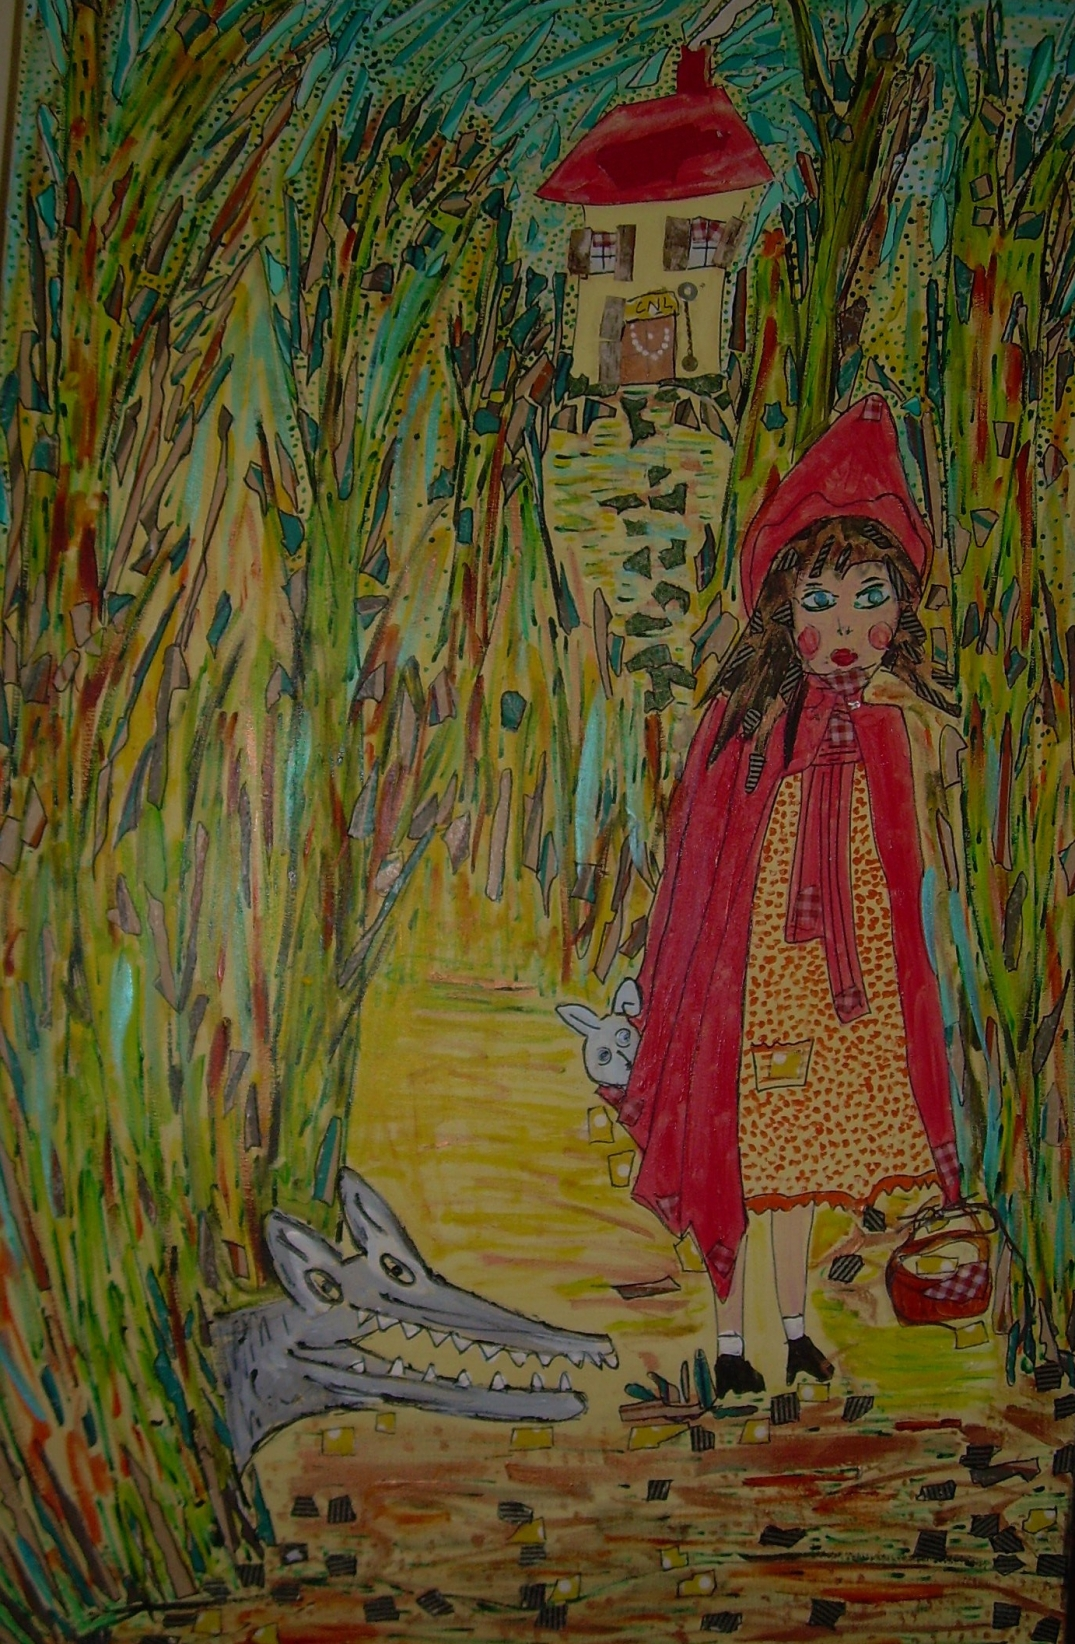 Le petit chaperon rouge 120x80cm Collection privée